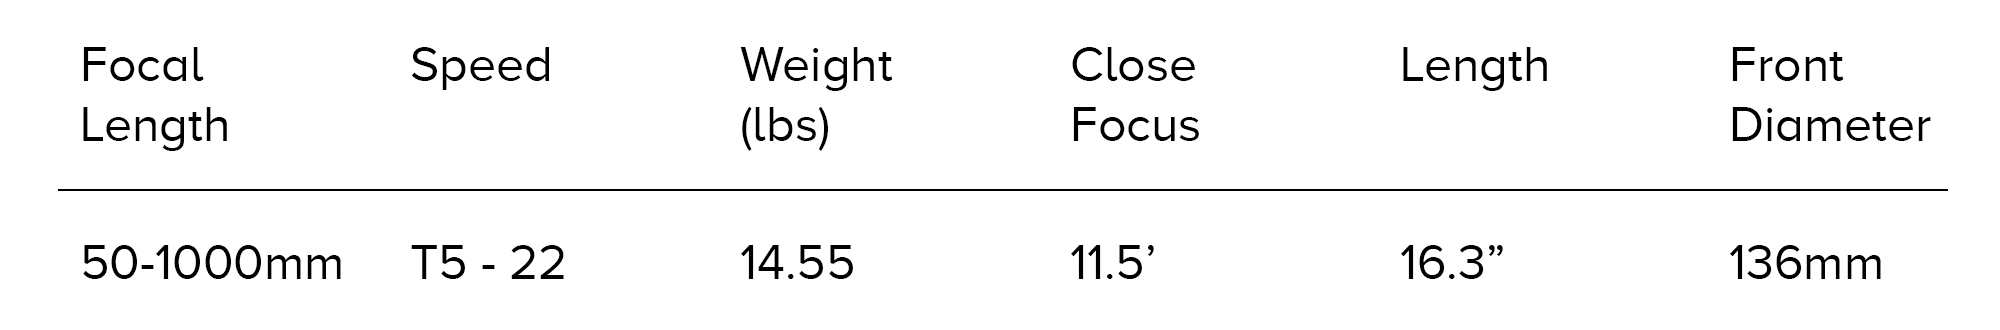 Canon-50-1000-Specs.png